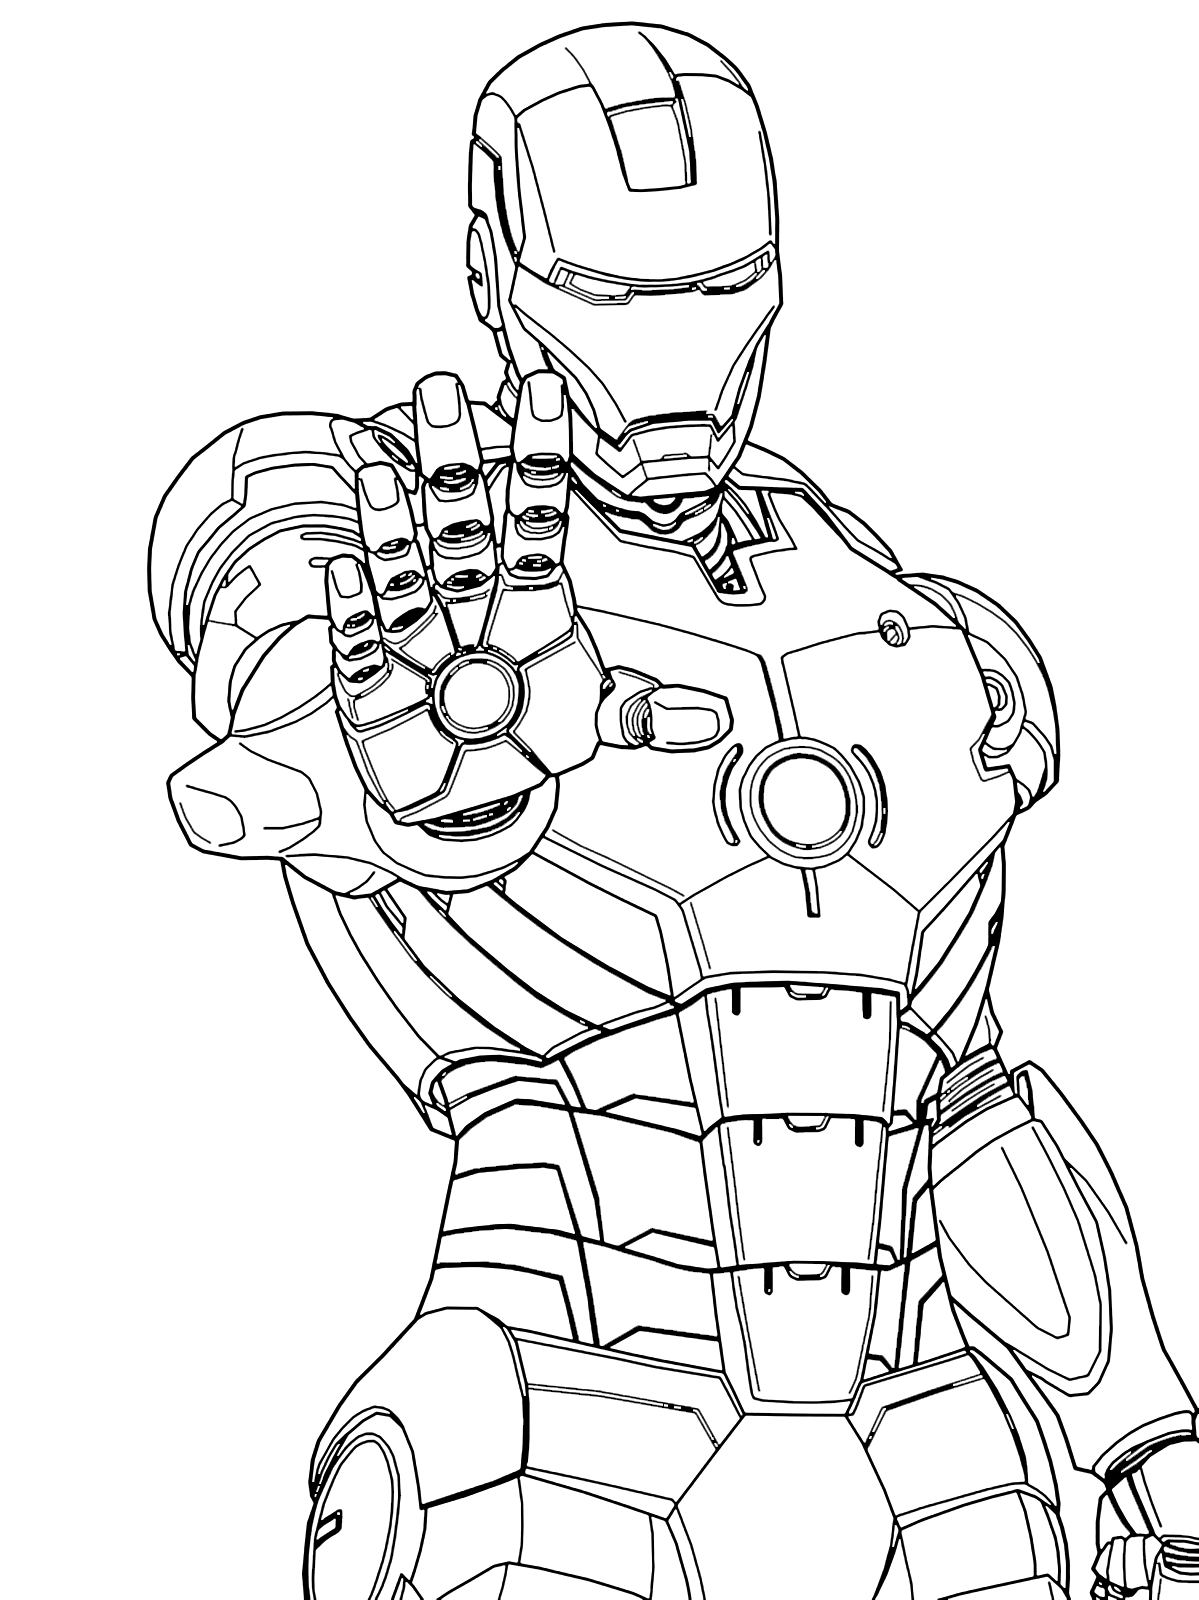 ironman coloring sheets iron man to color for children  iron man kids coloring pages sheets ironman coloring